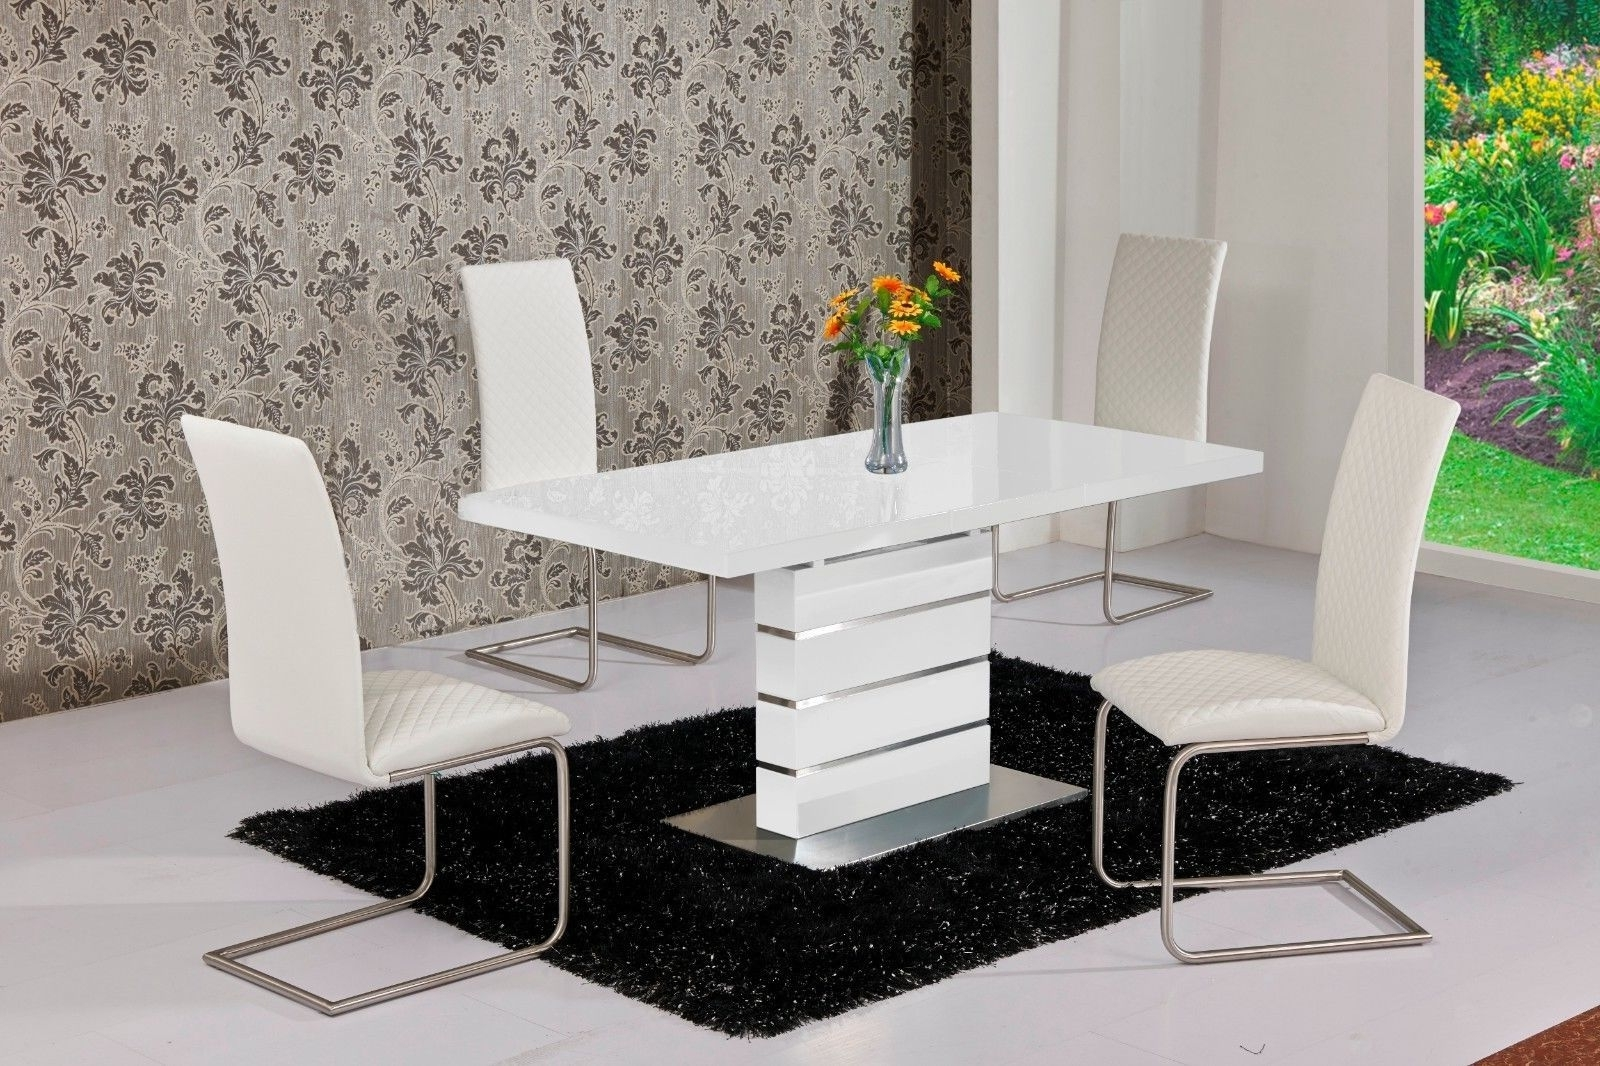 Well Known White High Gloss Dining Tables 6 Chairs With Mace High Gloss Extending 120 160 Dining Table & Chair Set – White (View 15 of 25)